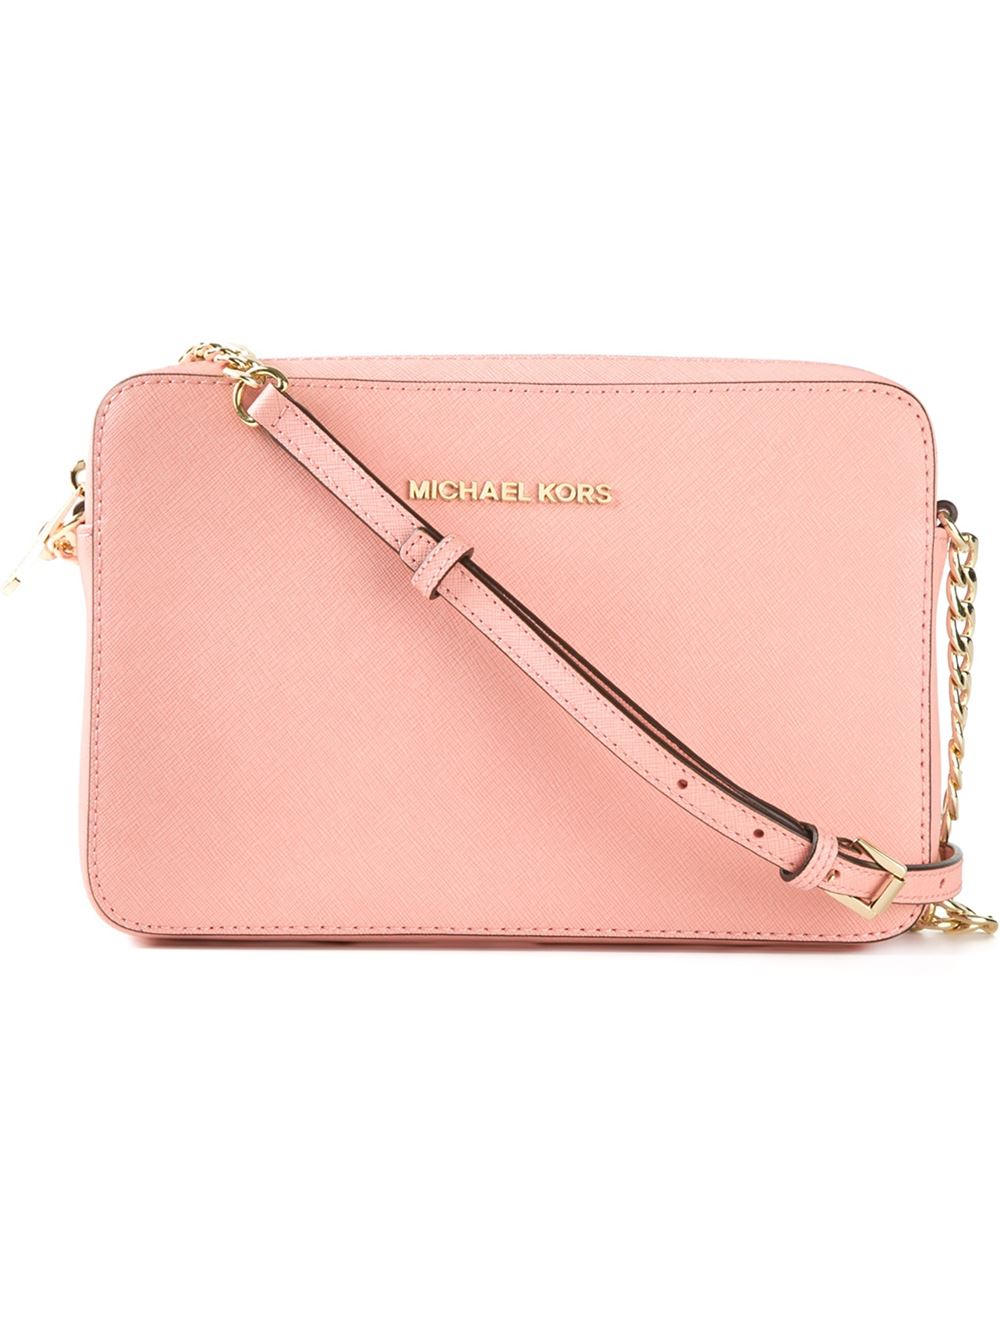 3170540856ec MICHAEL Michael Kors Jet Set Travel Cross-Body Bag in Pink - Lyst